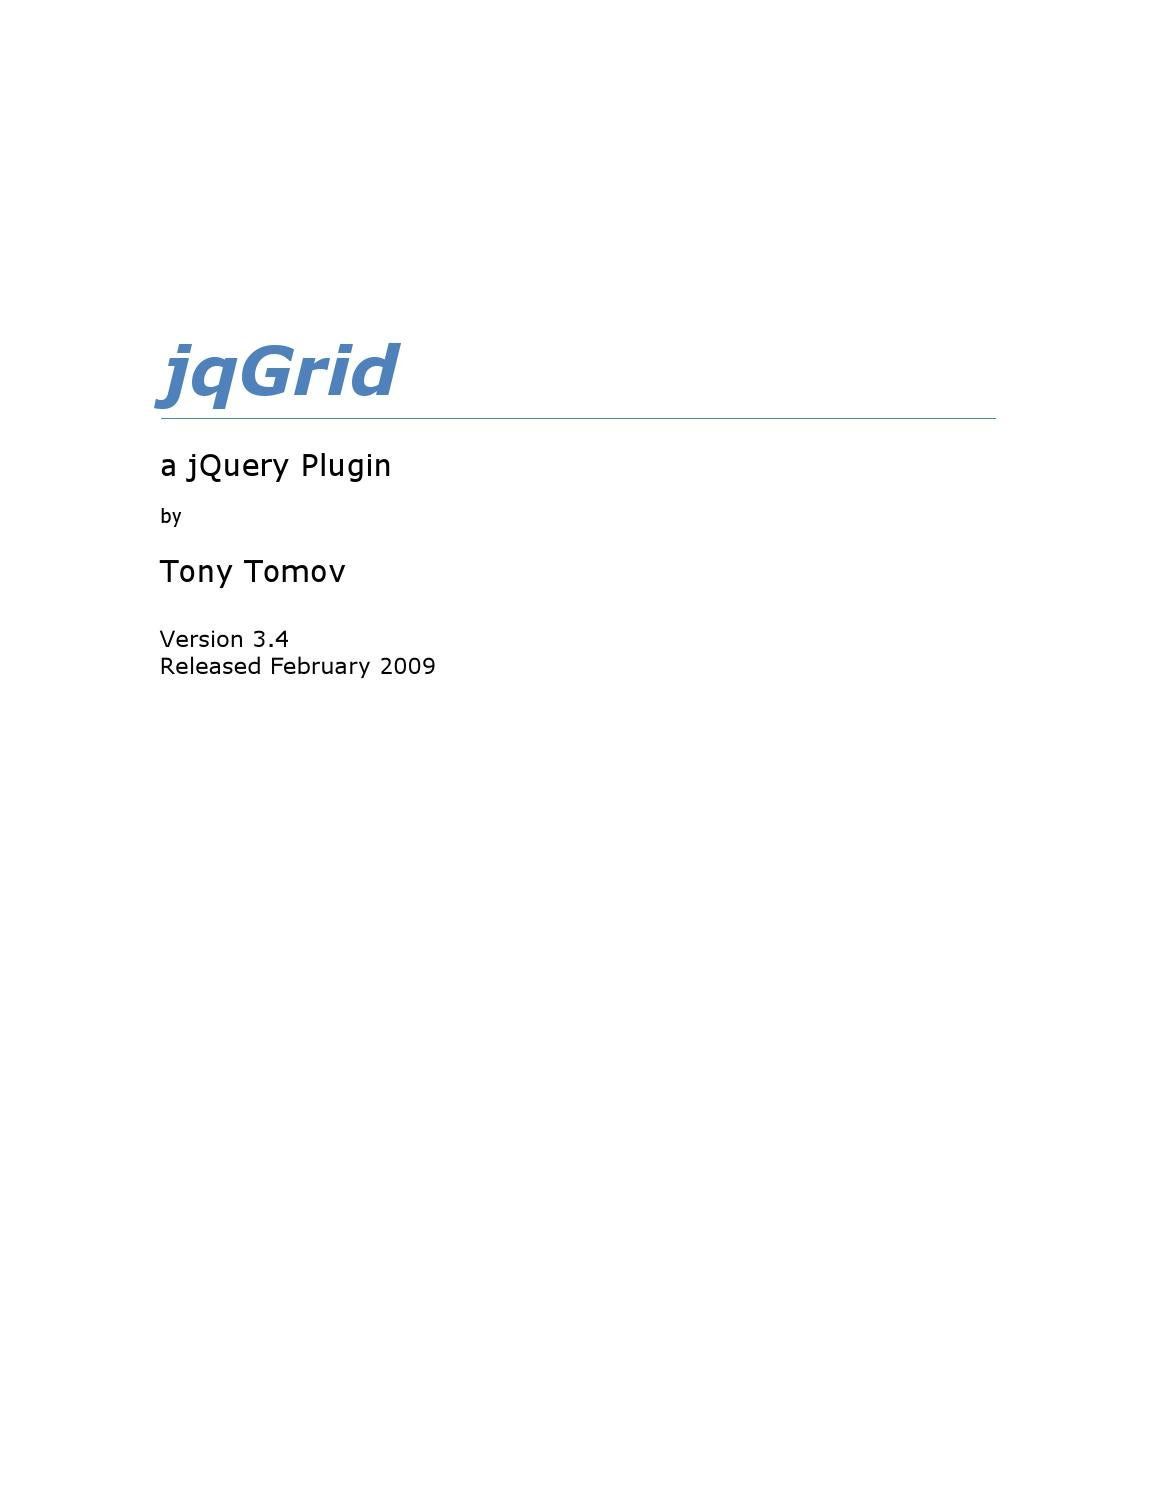 Jqgriddocs pages 1 50 text version | fliphtml5.